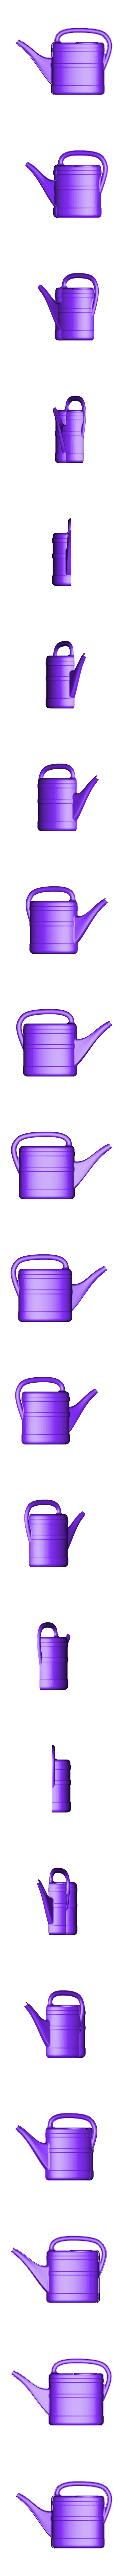 watering_can_right.stl Download free STL file Watering Can • Object to 3D print, MaxMKA